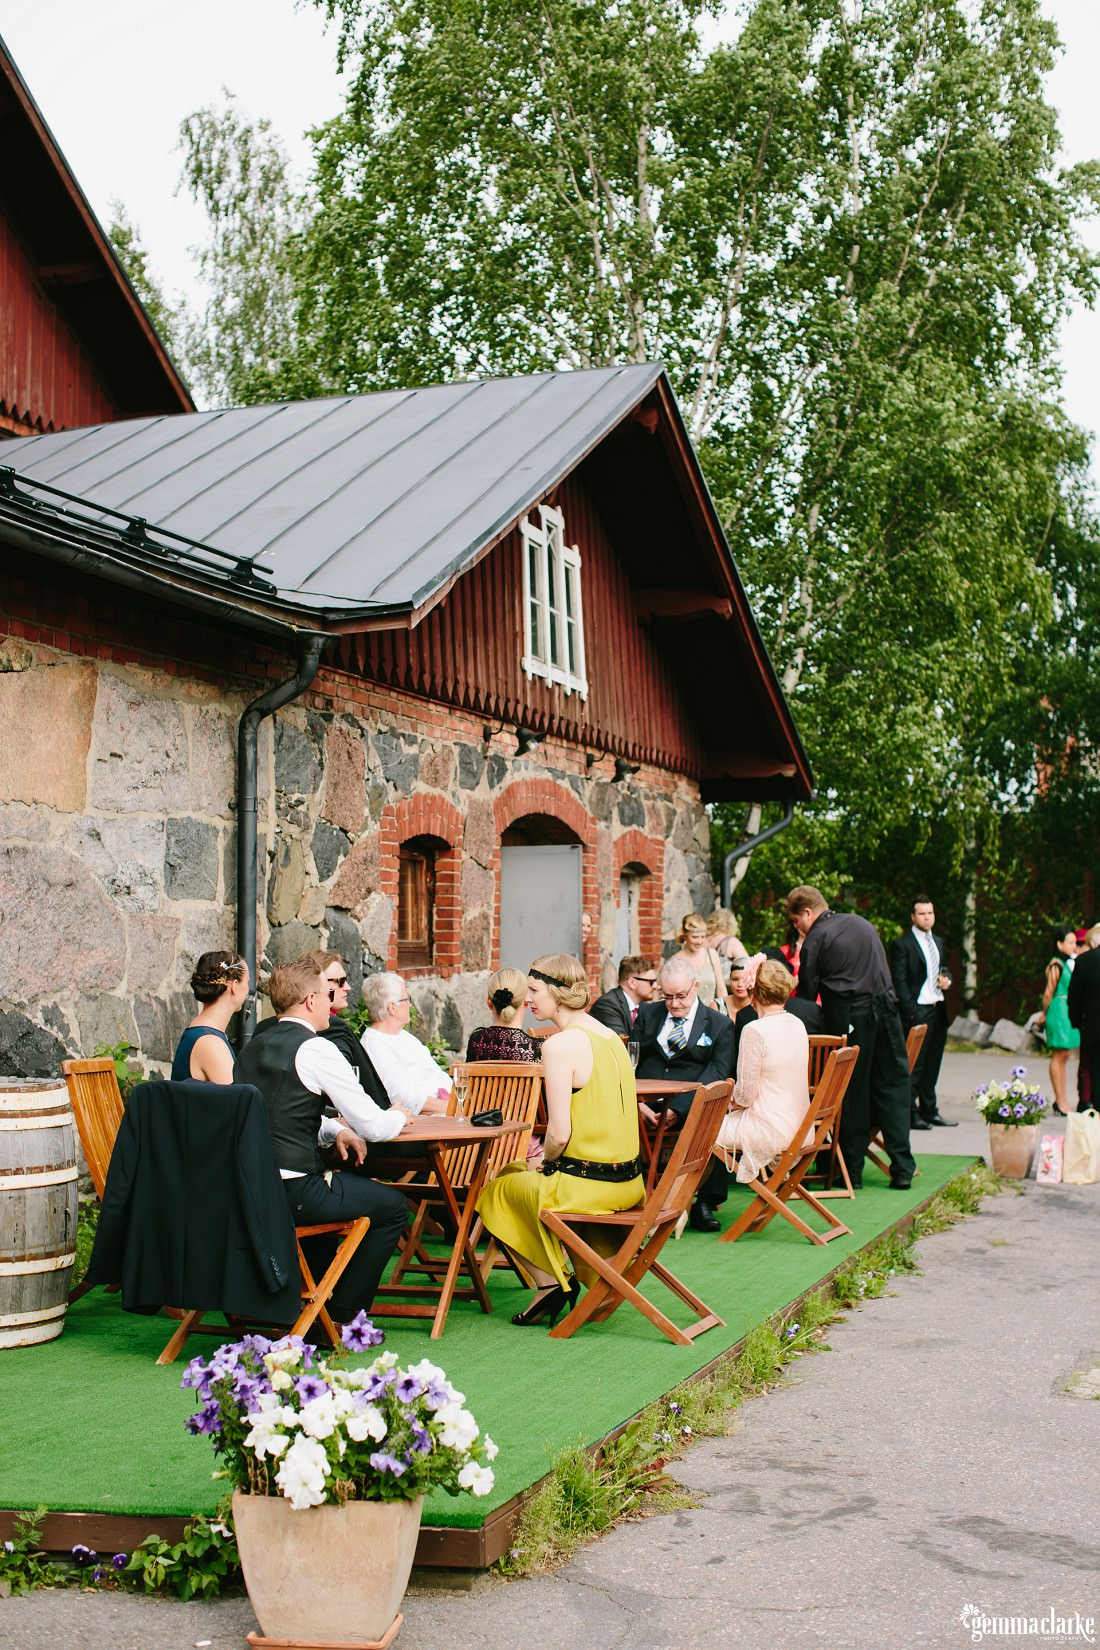 Wedding guests seated outside on wooden chairs